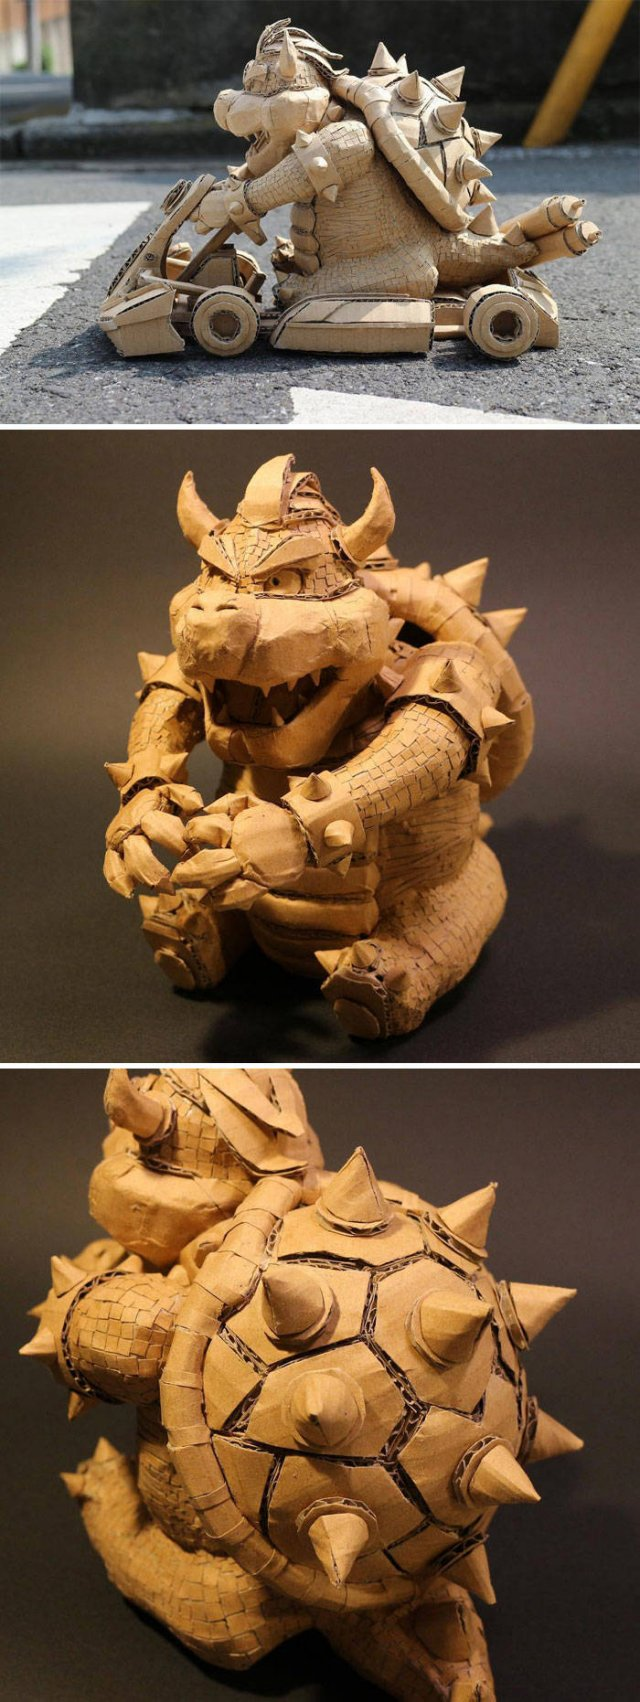 Artist Turns Old Amazon Boxes Into Sculptures (30 pics)